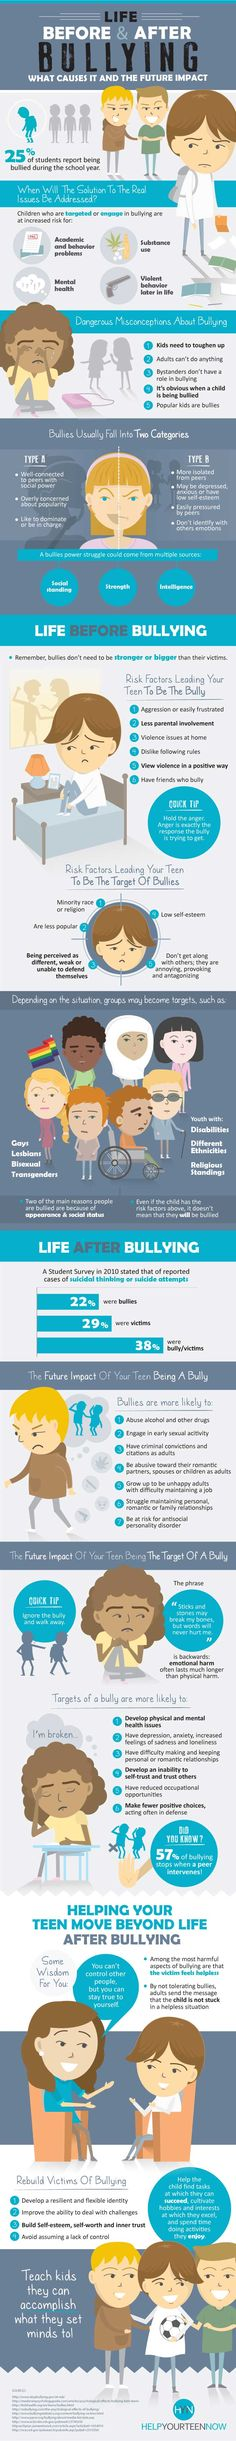 The issues caused by bullying have always been a threat to the well-being of teenagers and children on both sides. Bullying impacts both the victim and the bully for years to come. In the following infographic, the folks at Help Your Teen Now have concluded that the events leading up to a teen becoming a bully is just as important to understand as the issues caused afterwards.